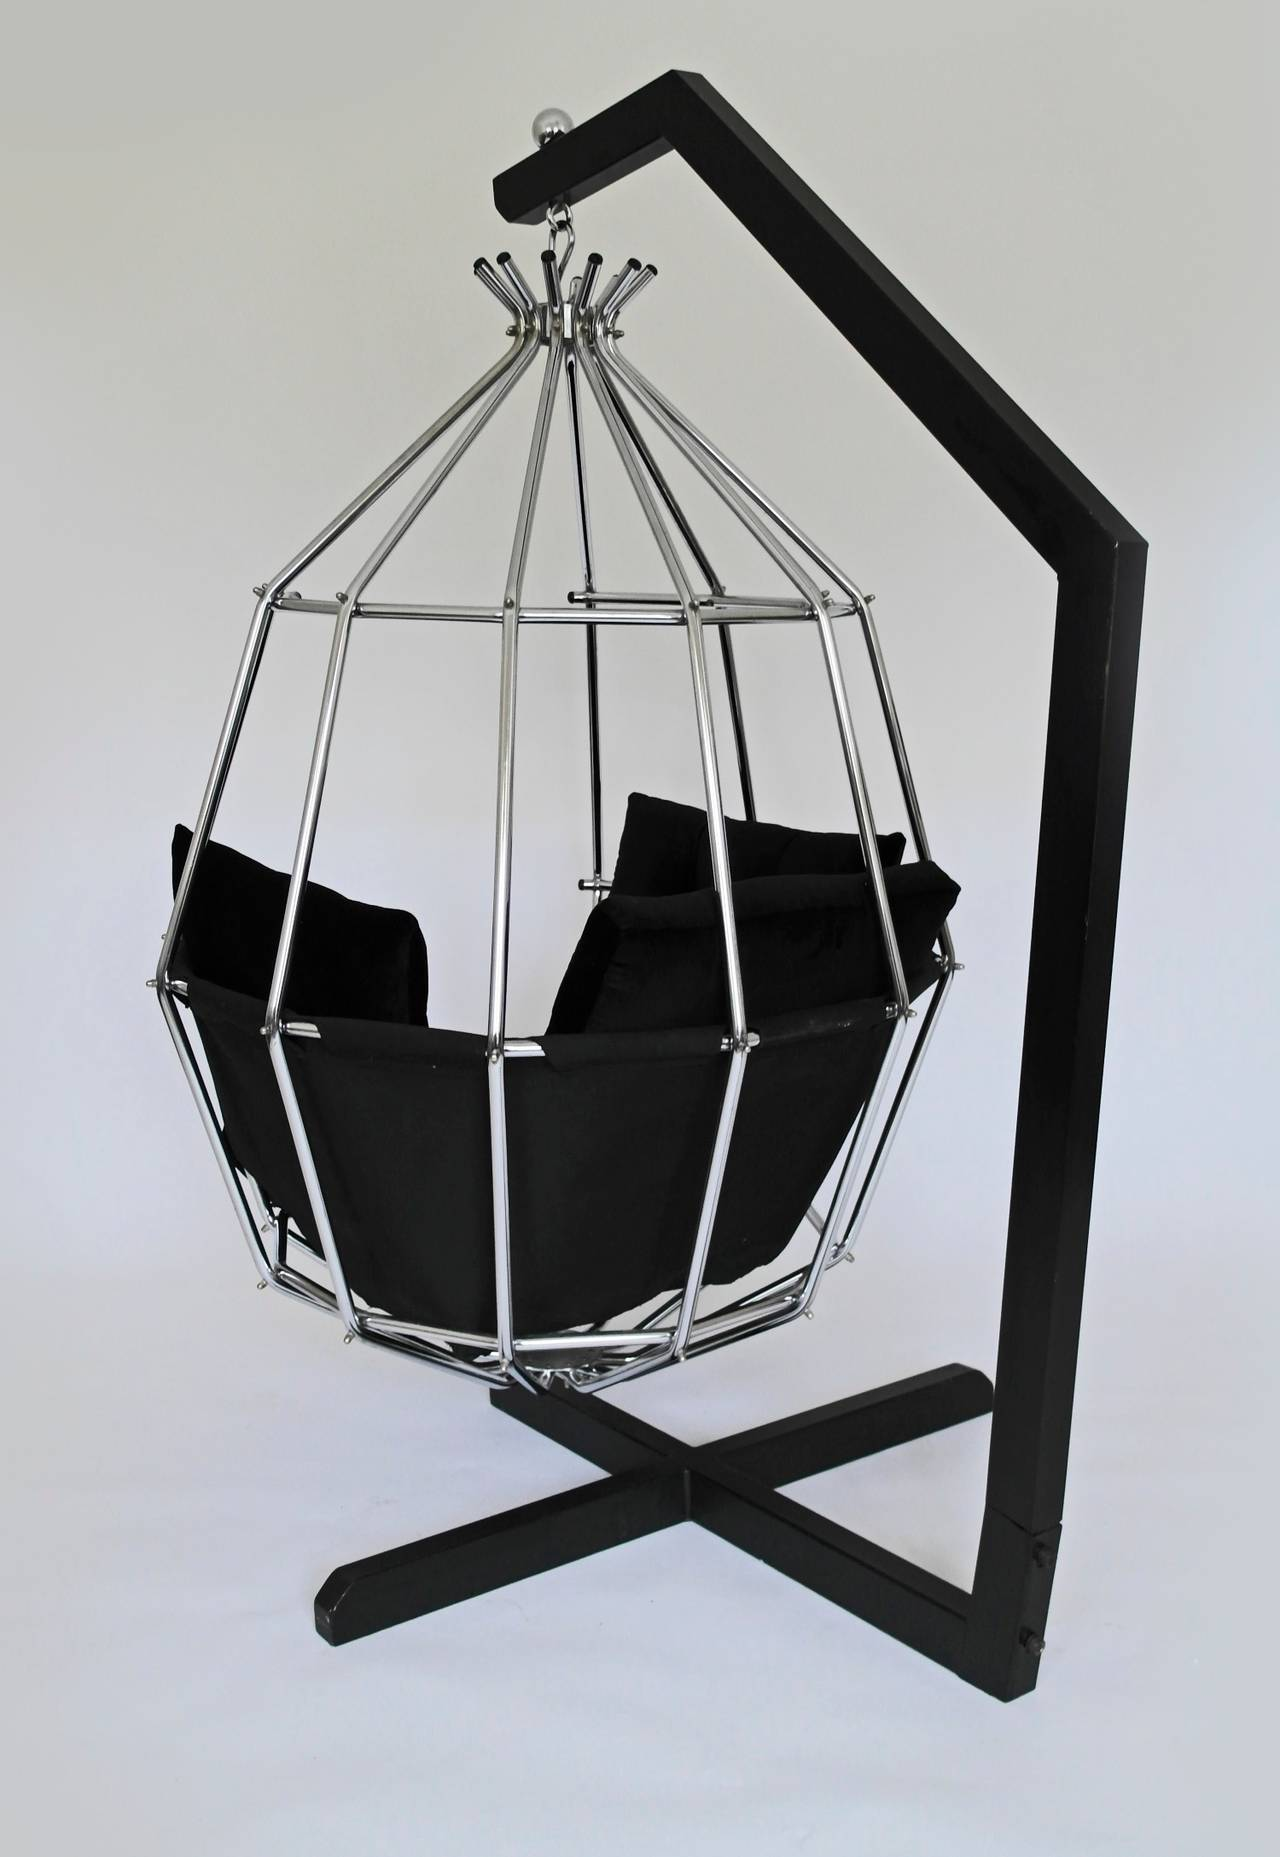 Retro 1970s Hanging Birdcage Chair By Ib Arberg Arbre